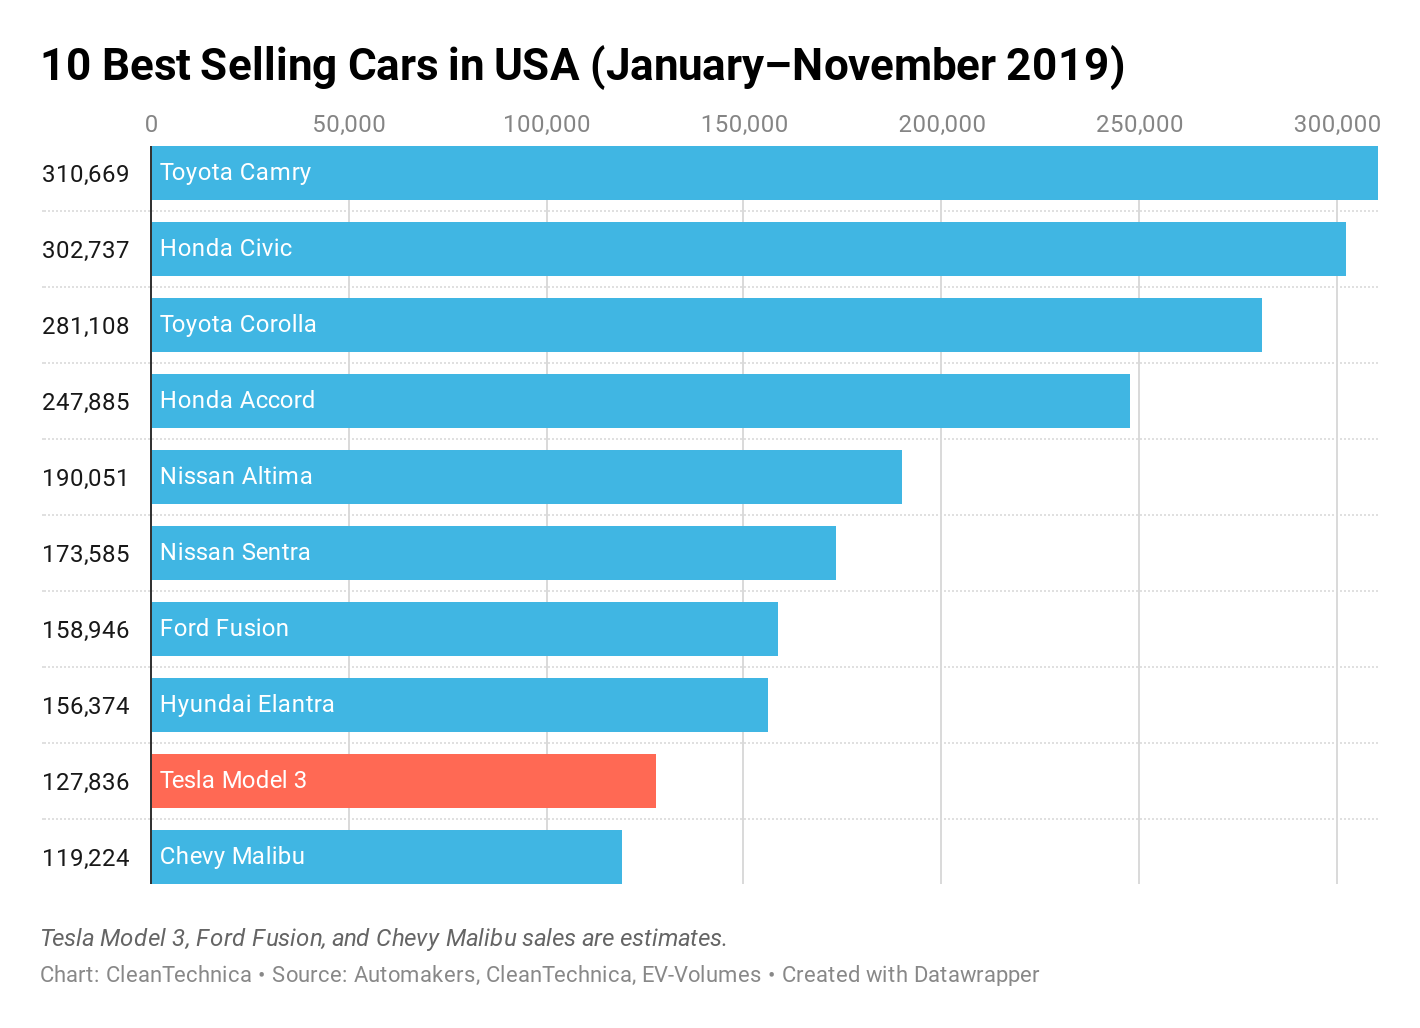 Tesla Model 3 = 9th Best Selling Car In USA   CleanTechnica